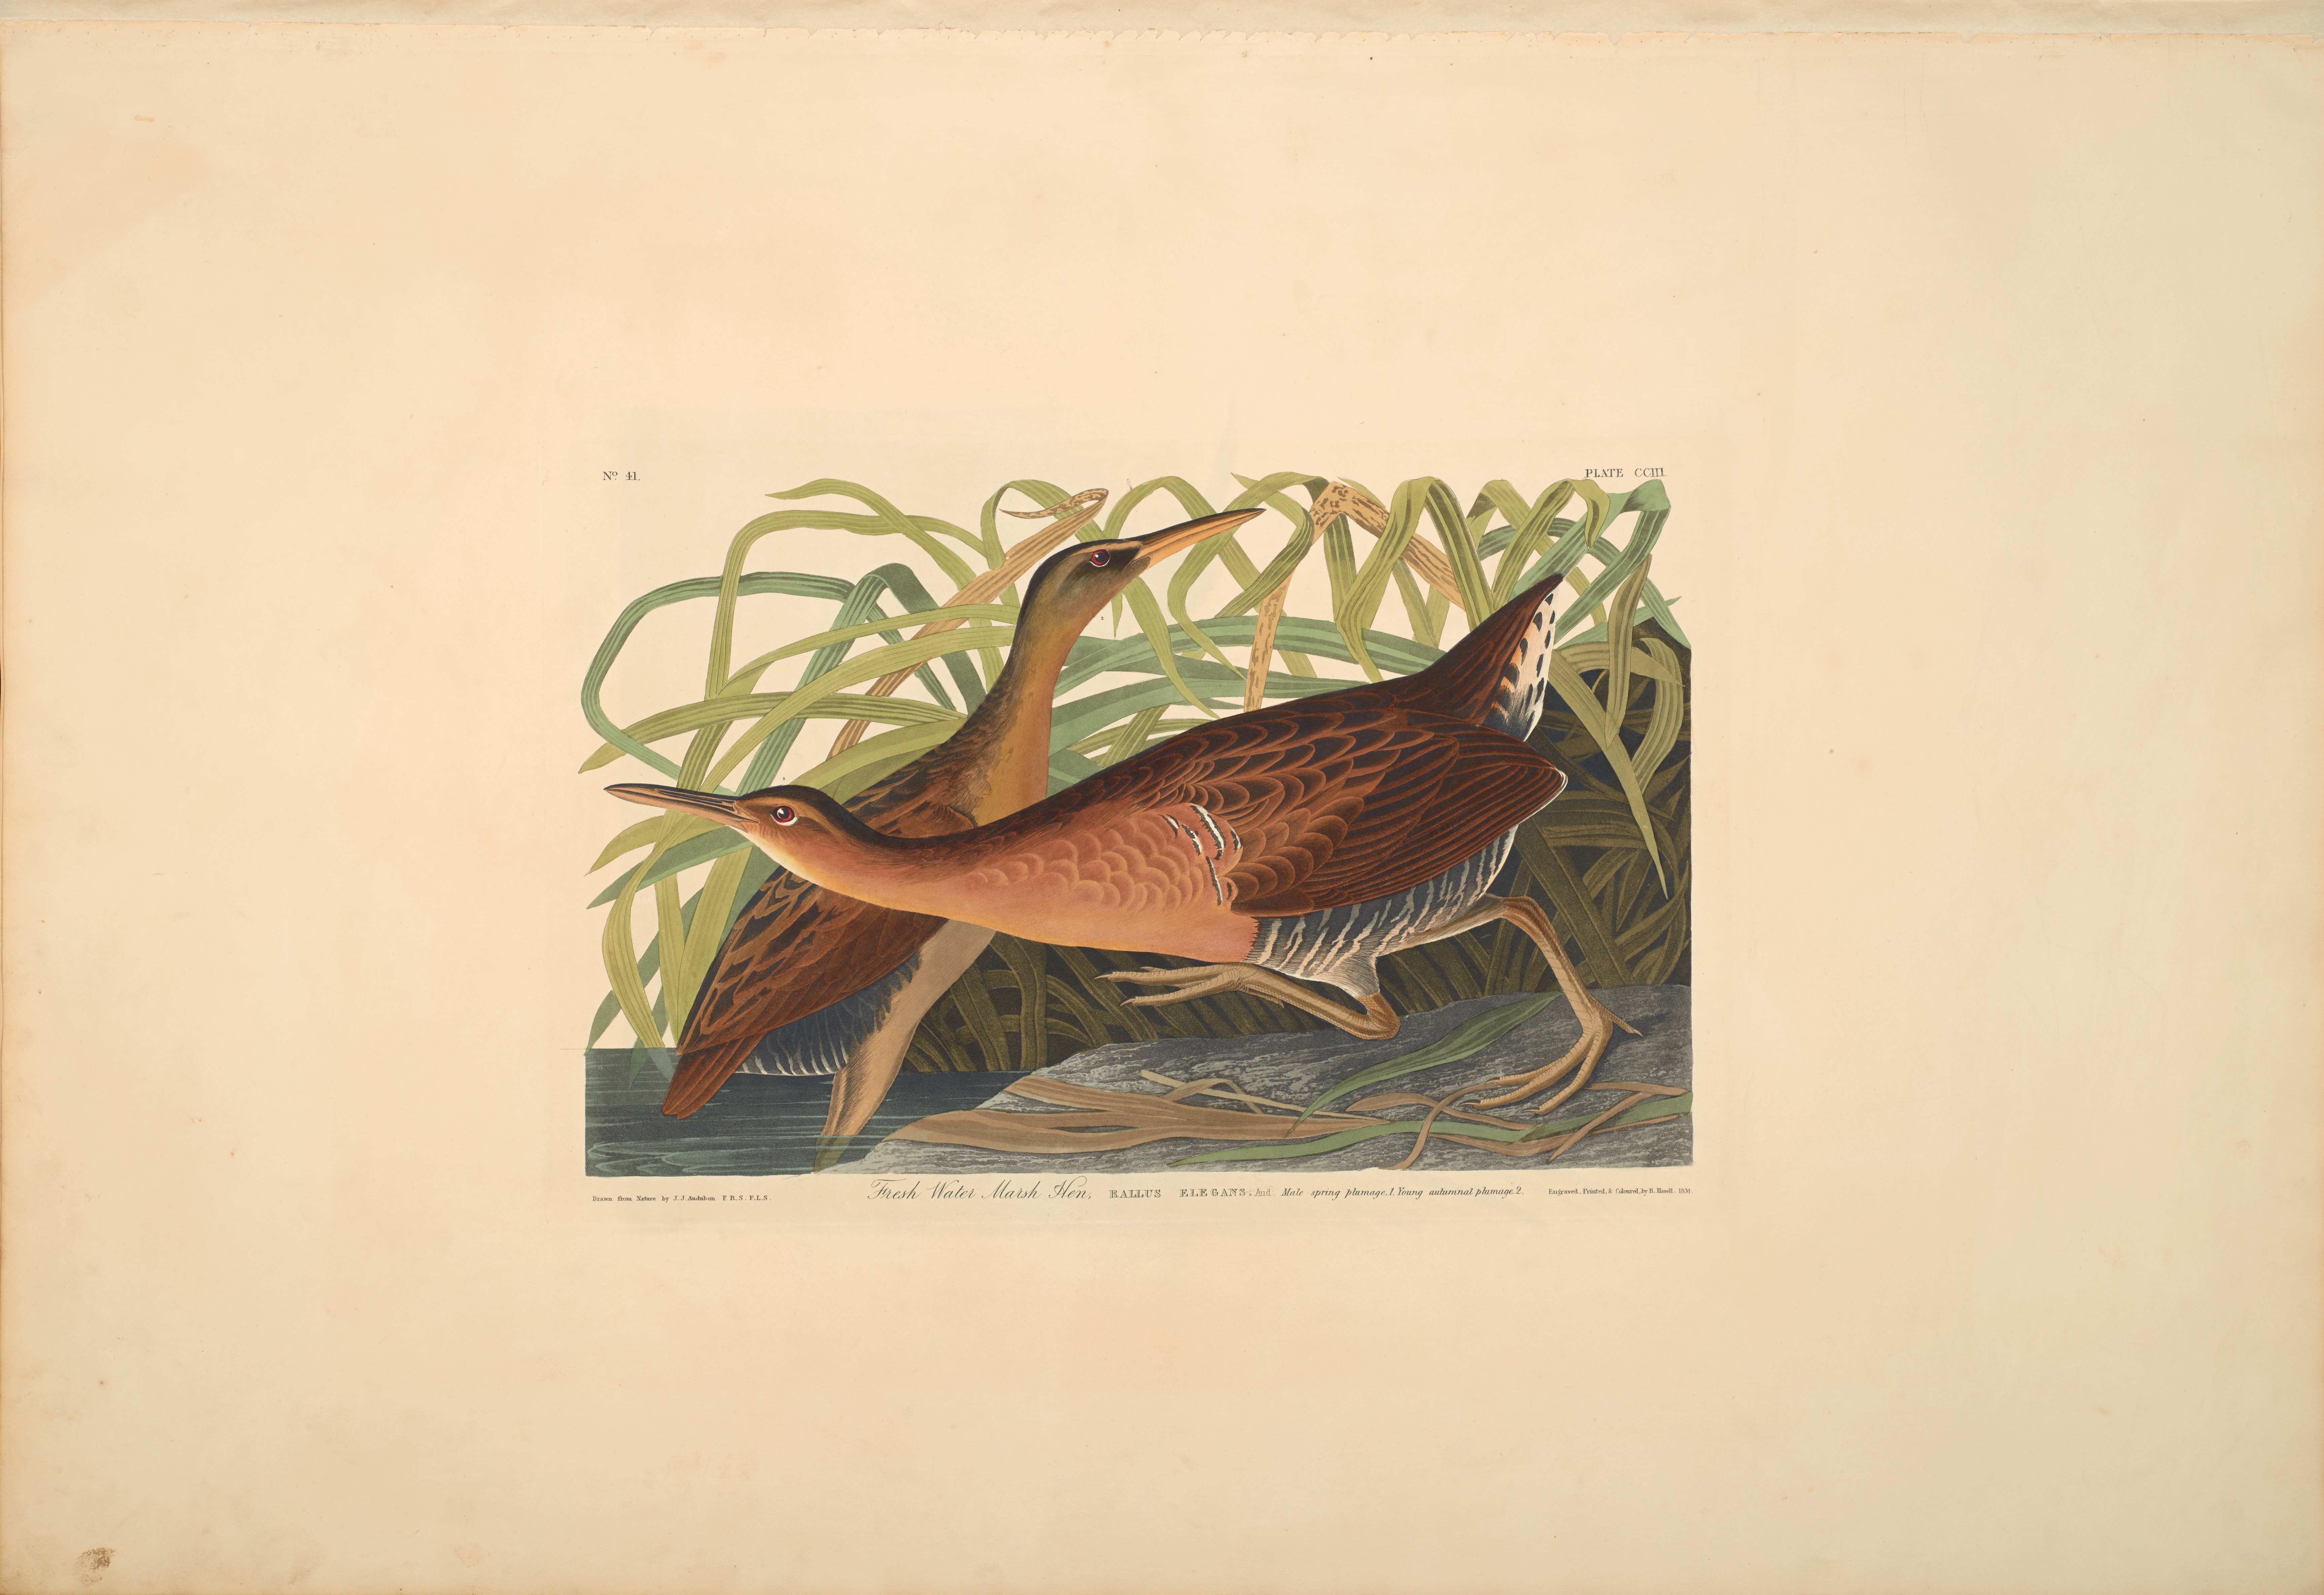 John James Audubon, Fresh-water Marsh Hen, from The Birds of America, 1827 – 38 , hand - colored aquatint/engraving on paper , 40 x 26 in., North Carolina Museum of Art, Transfer from the North Carolina State Library